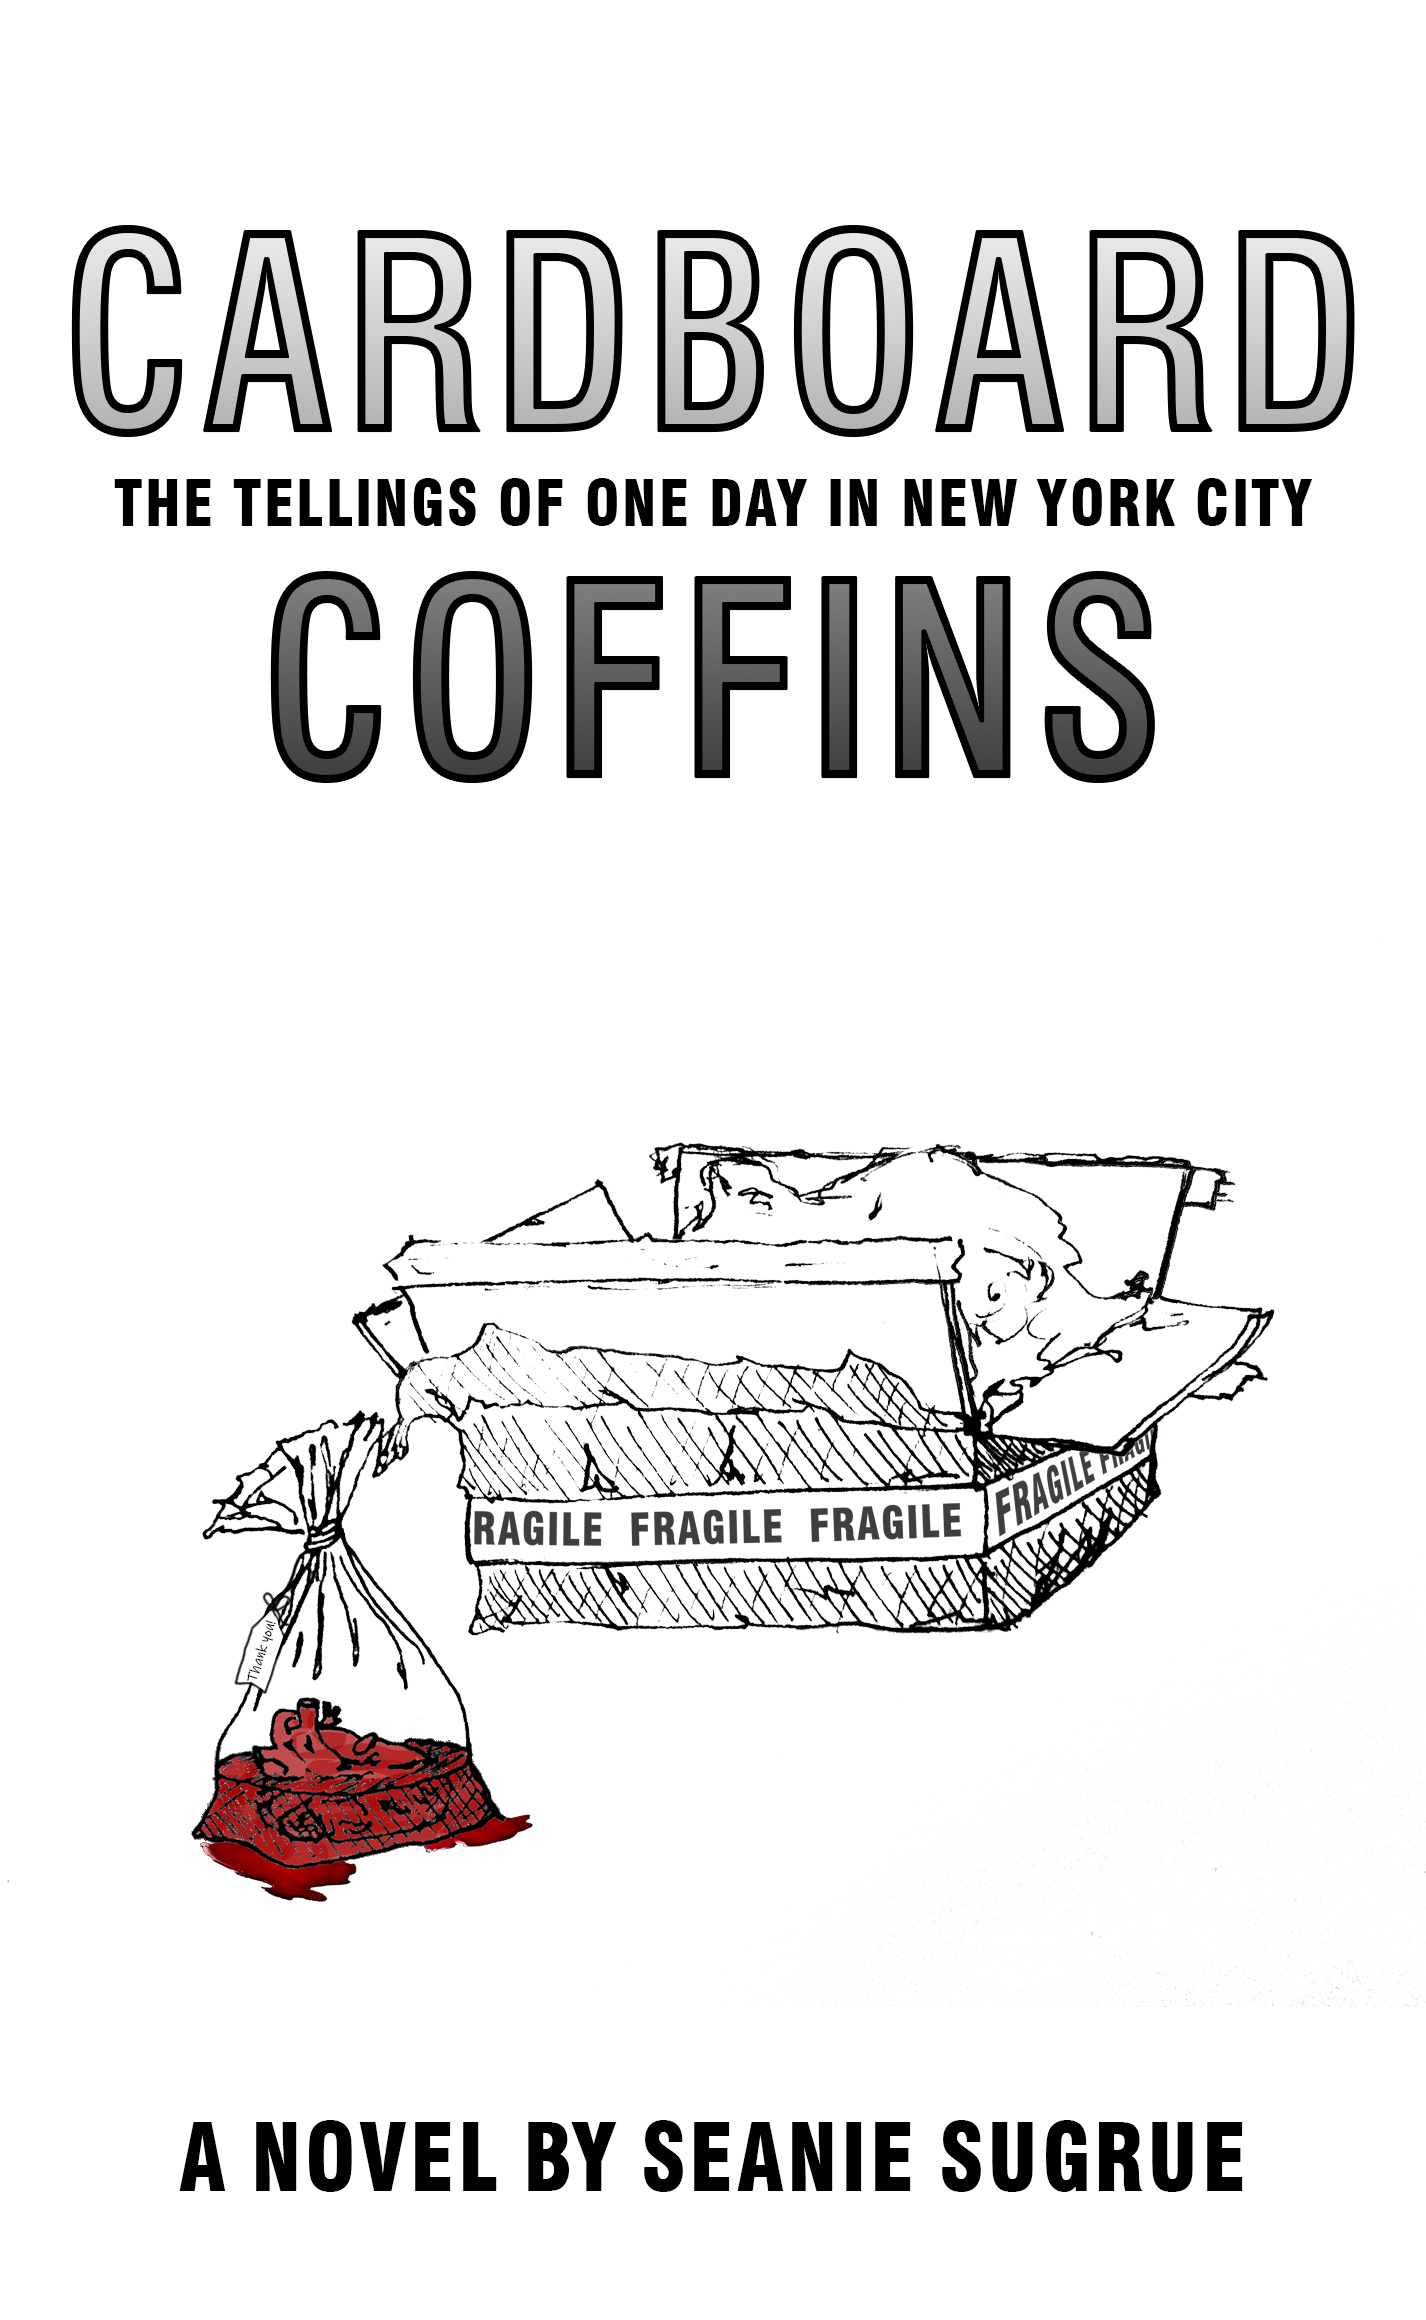 Cardboard_Coffins_Cover_for_Kindle.jpg